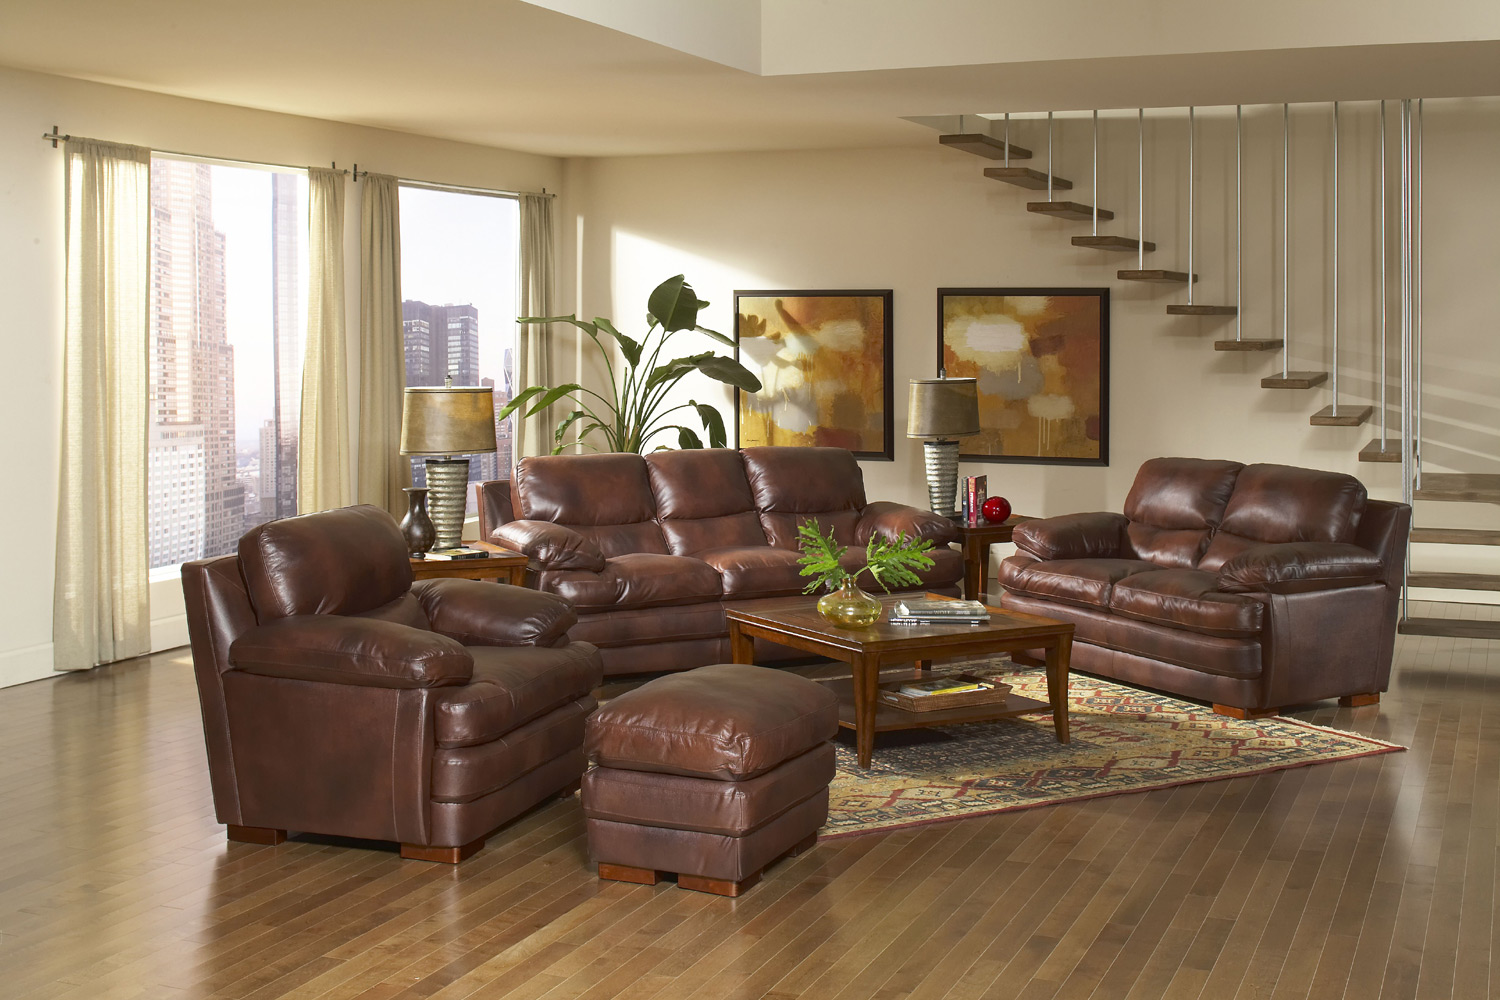 Groovy Baron Top Grain Leather Sofa Leather Italia Home Gallery Evergreenethics Interior Chair Design Evergreenethicsorg